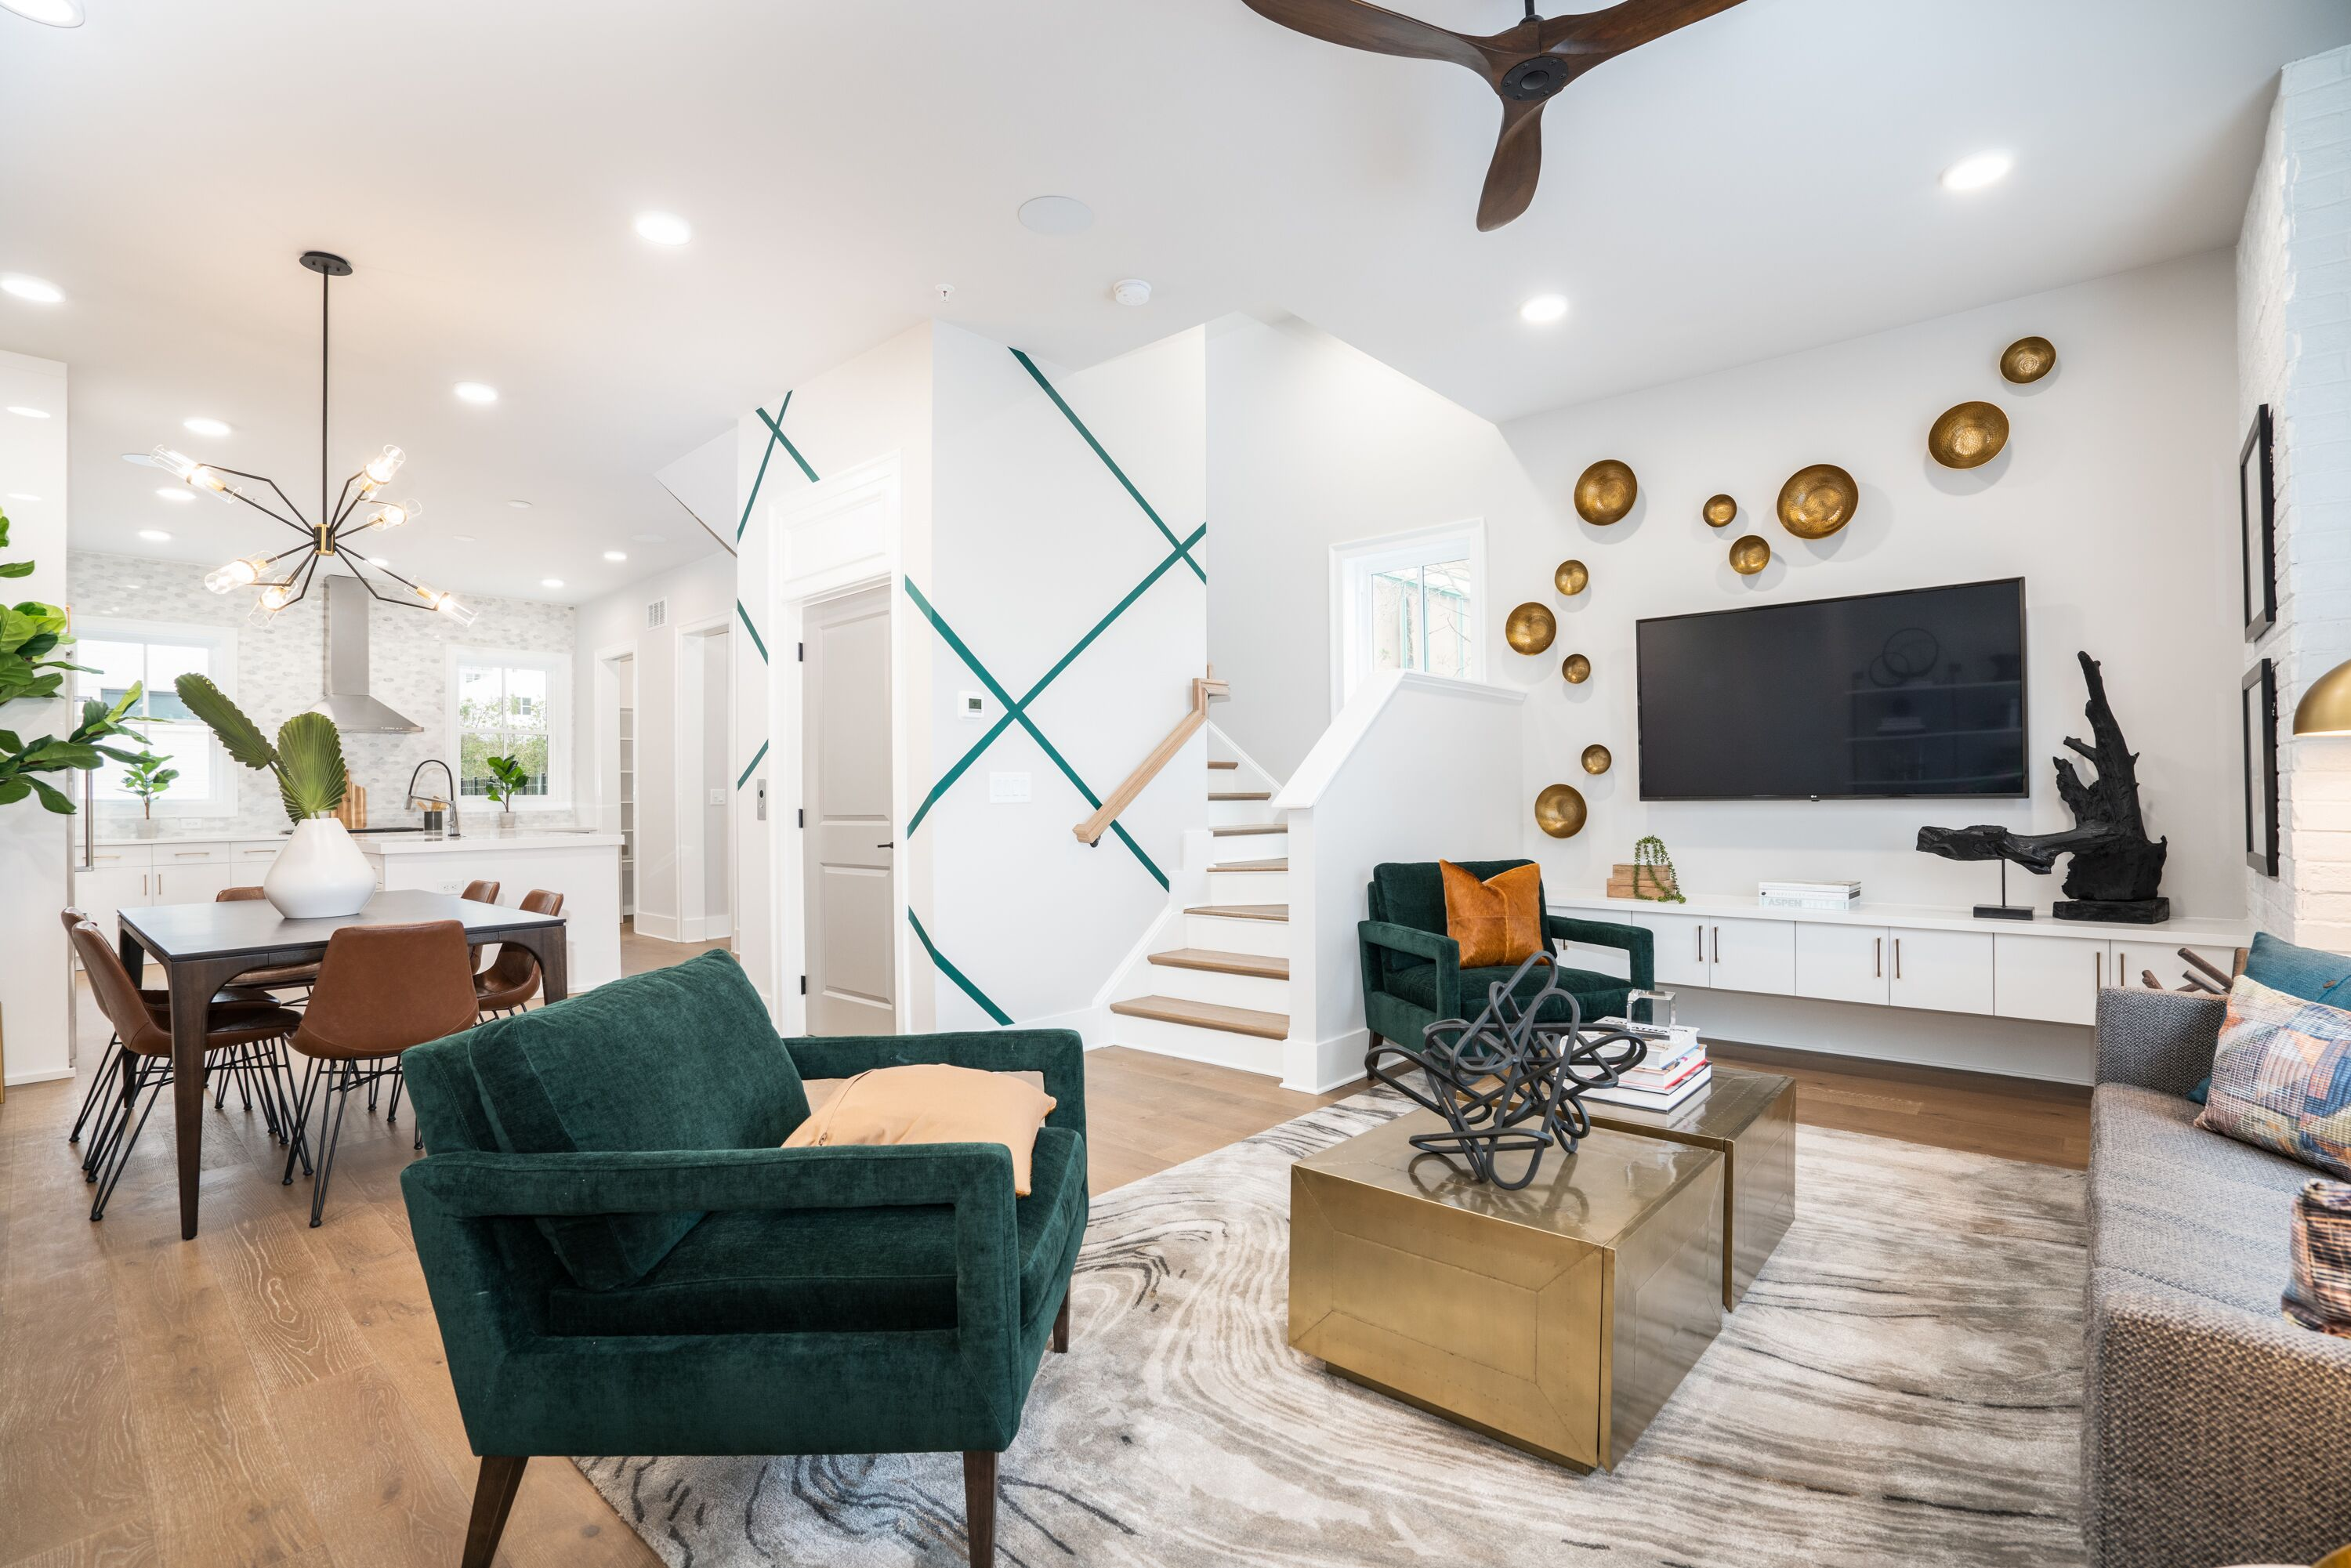 The interior of a townhome with white walls and an open floorplan and wood floors.